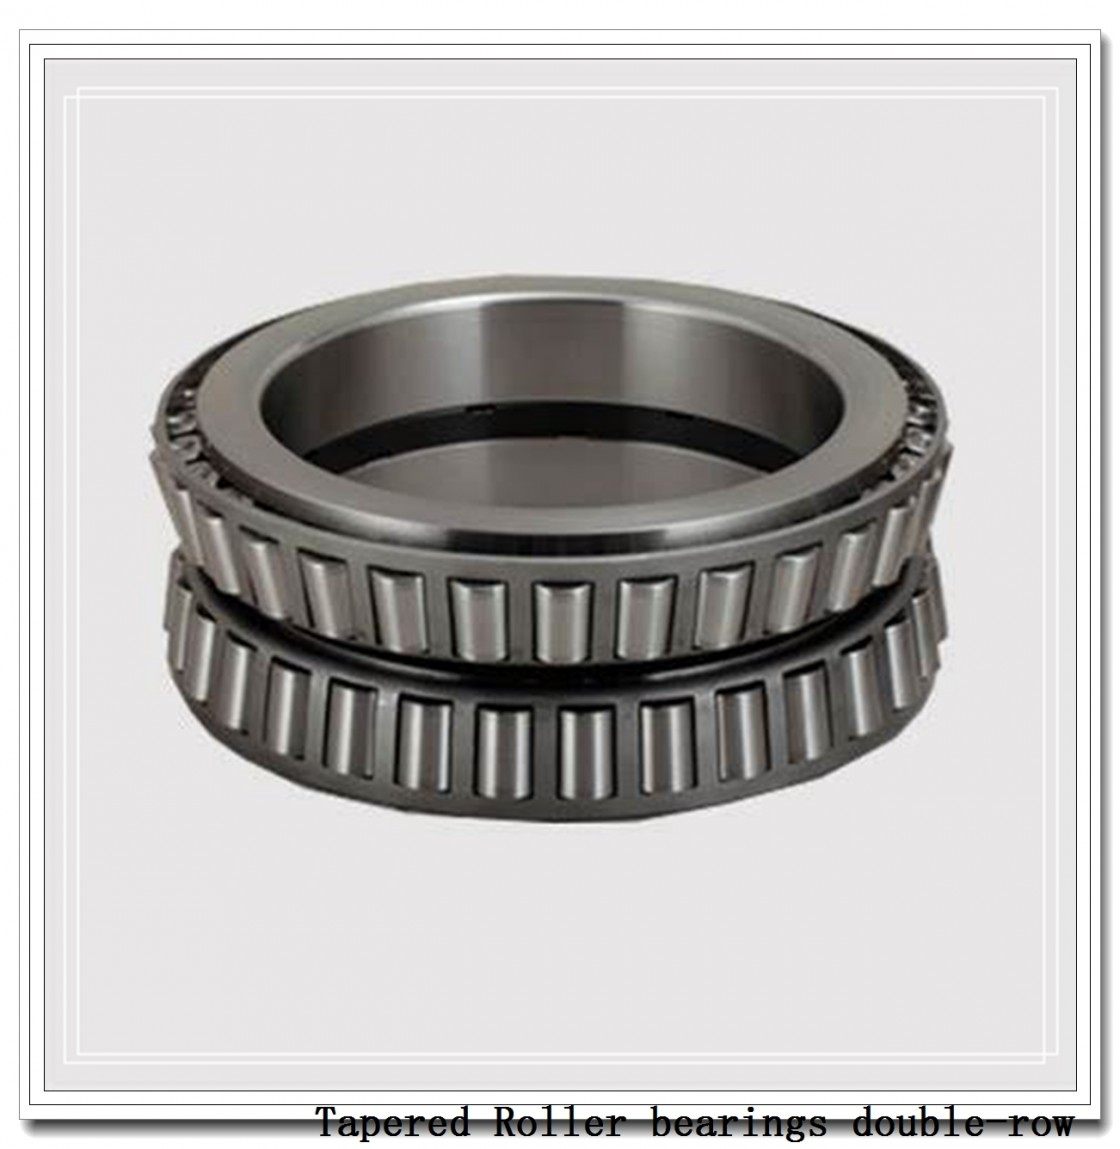 946D 932 Tapered Roller bearings double-row